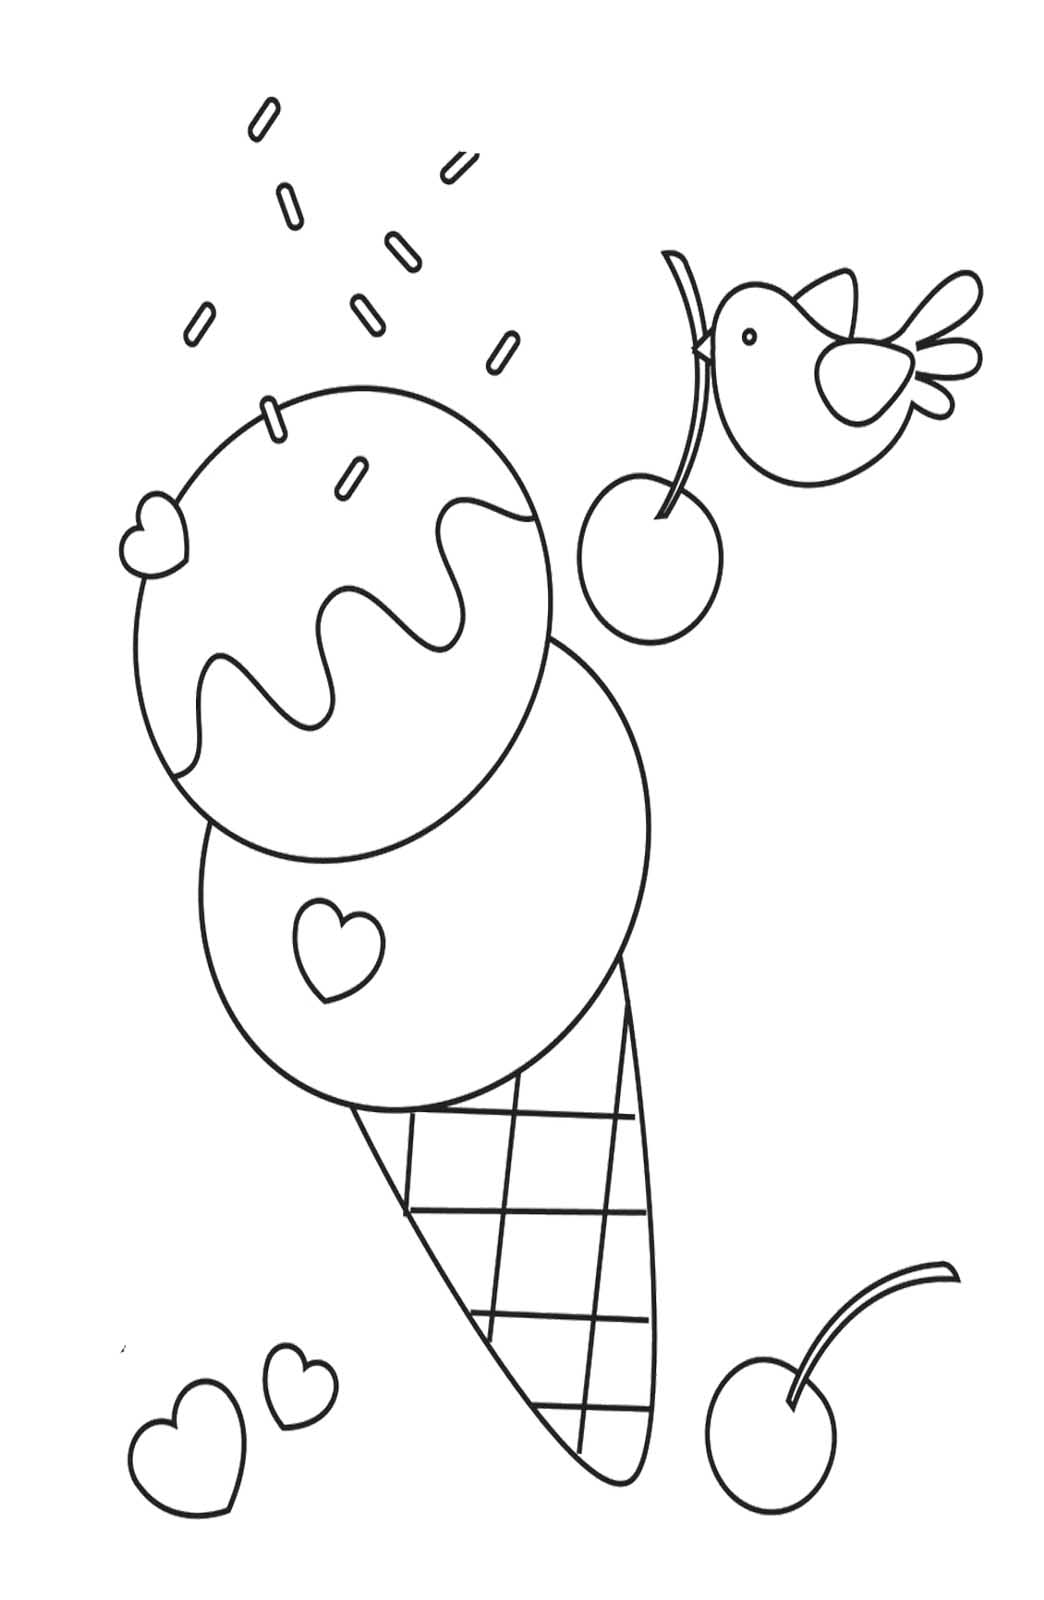 Ice Cream Sandwich Coloring Pages Sketch Coloring Page